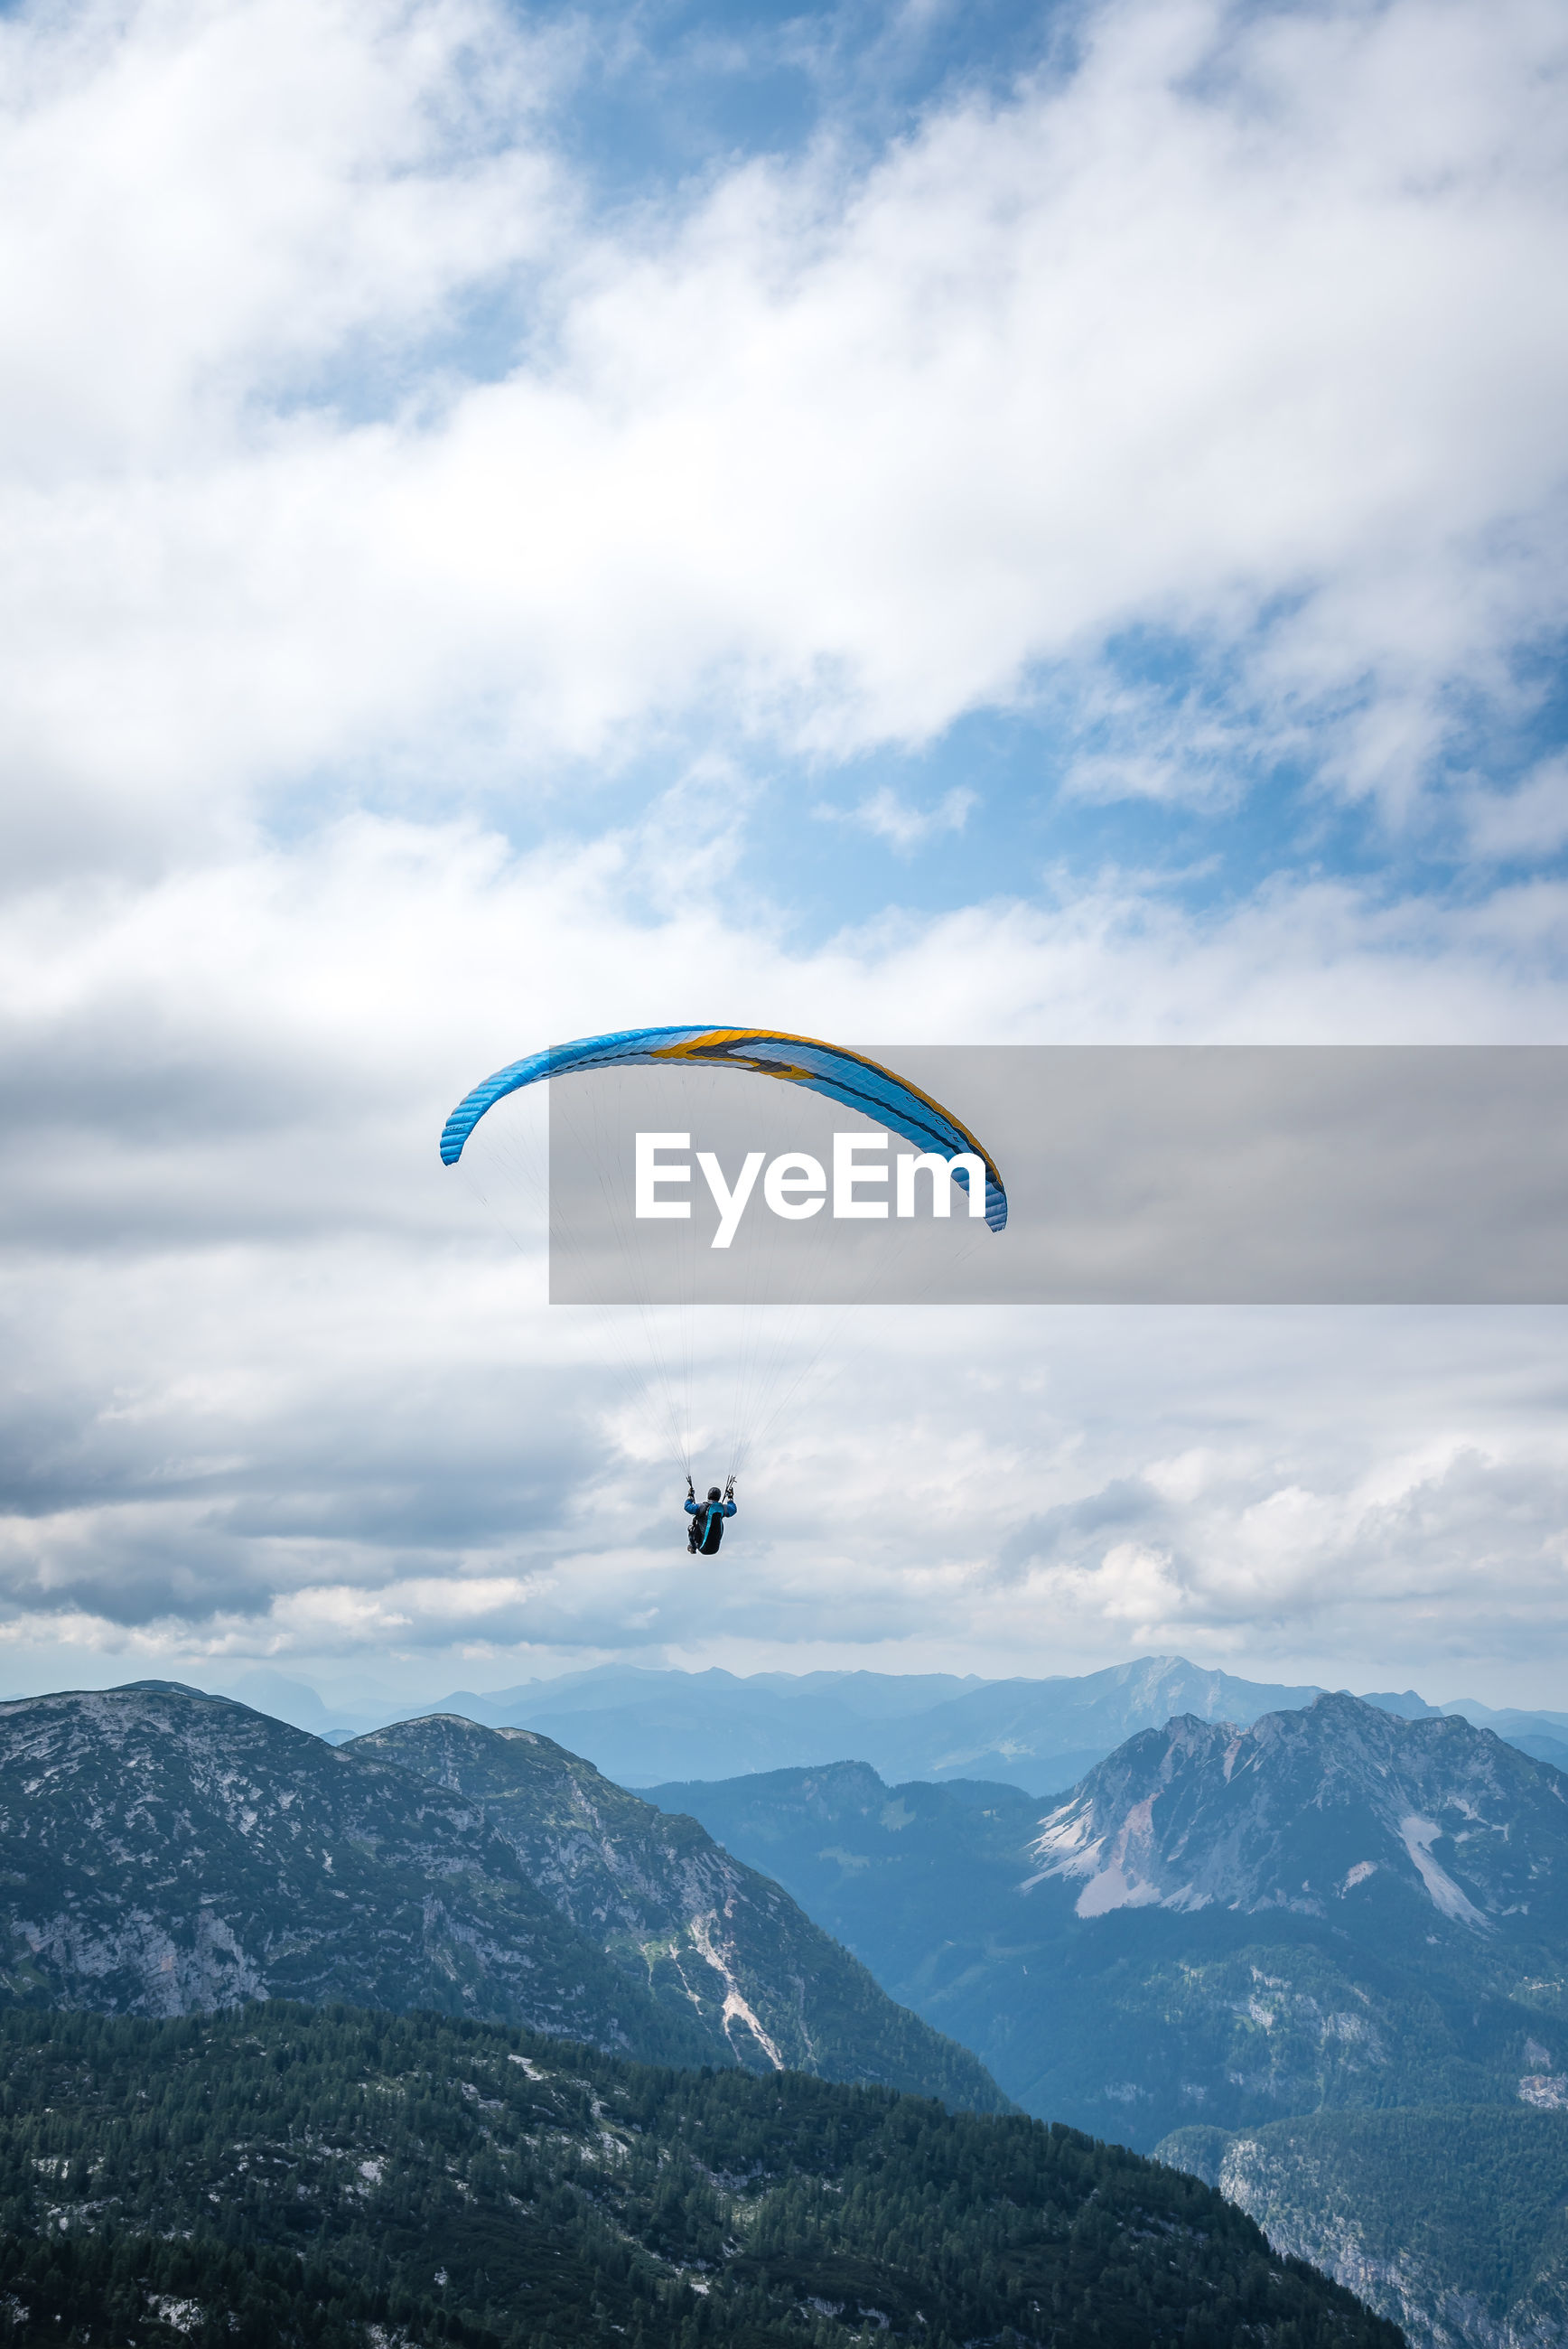 LOW ANGLE VIEW OF MAN PARAGLIDING AGAINST MOUNTAIN